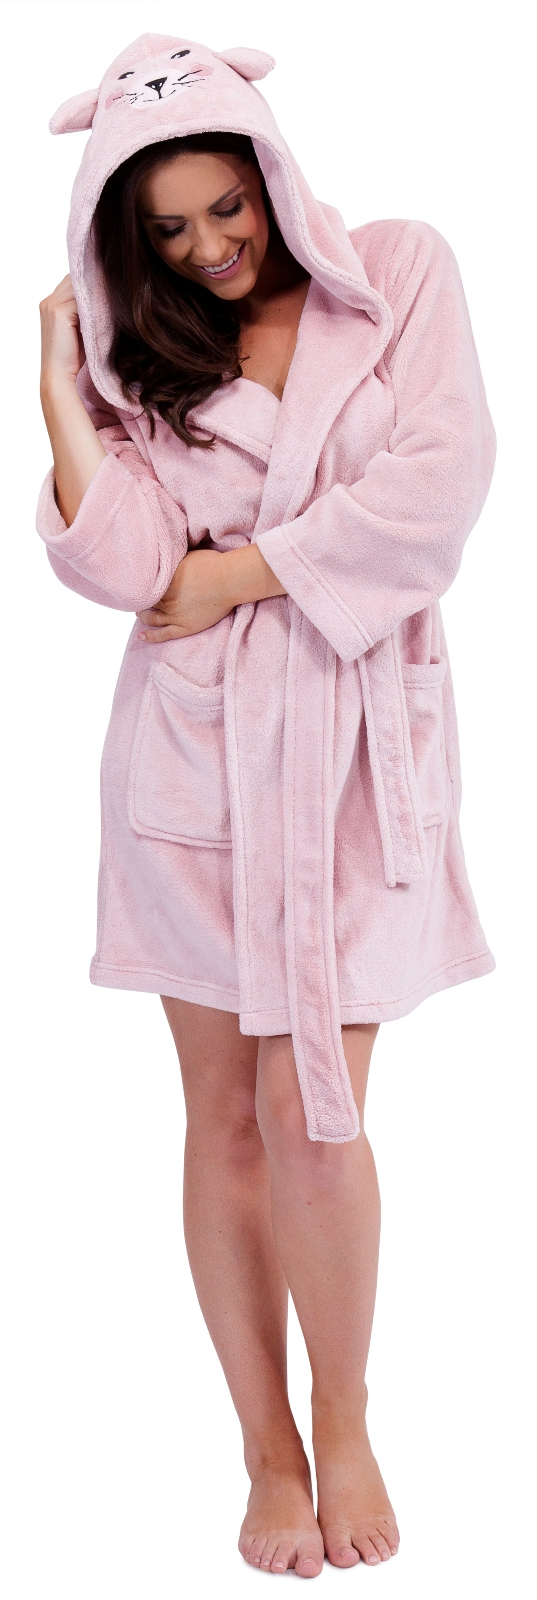 womens short hooded animal ears bath robes dressing gowns. Black Bedroom Furniture Sets. Home Design Ideas